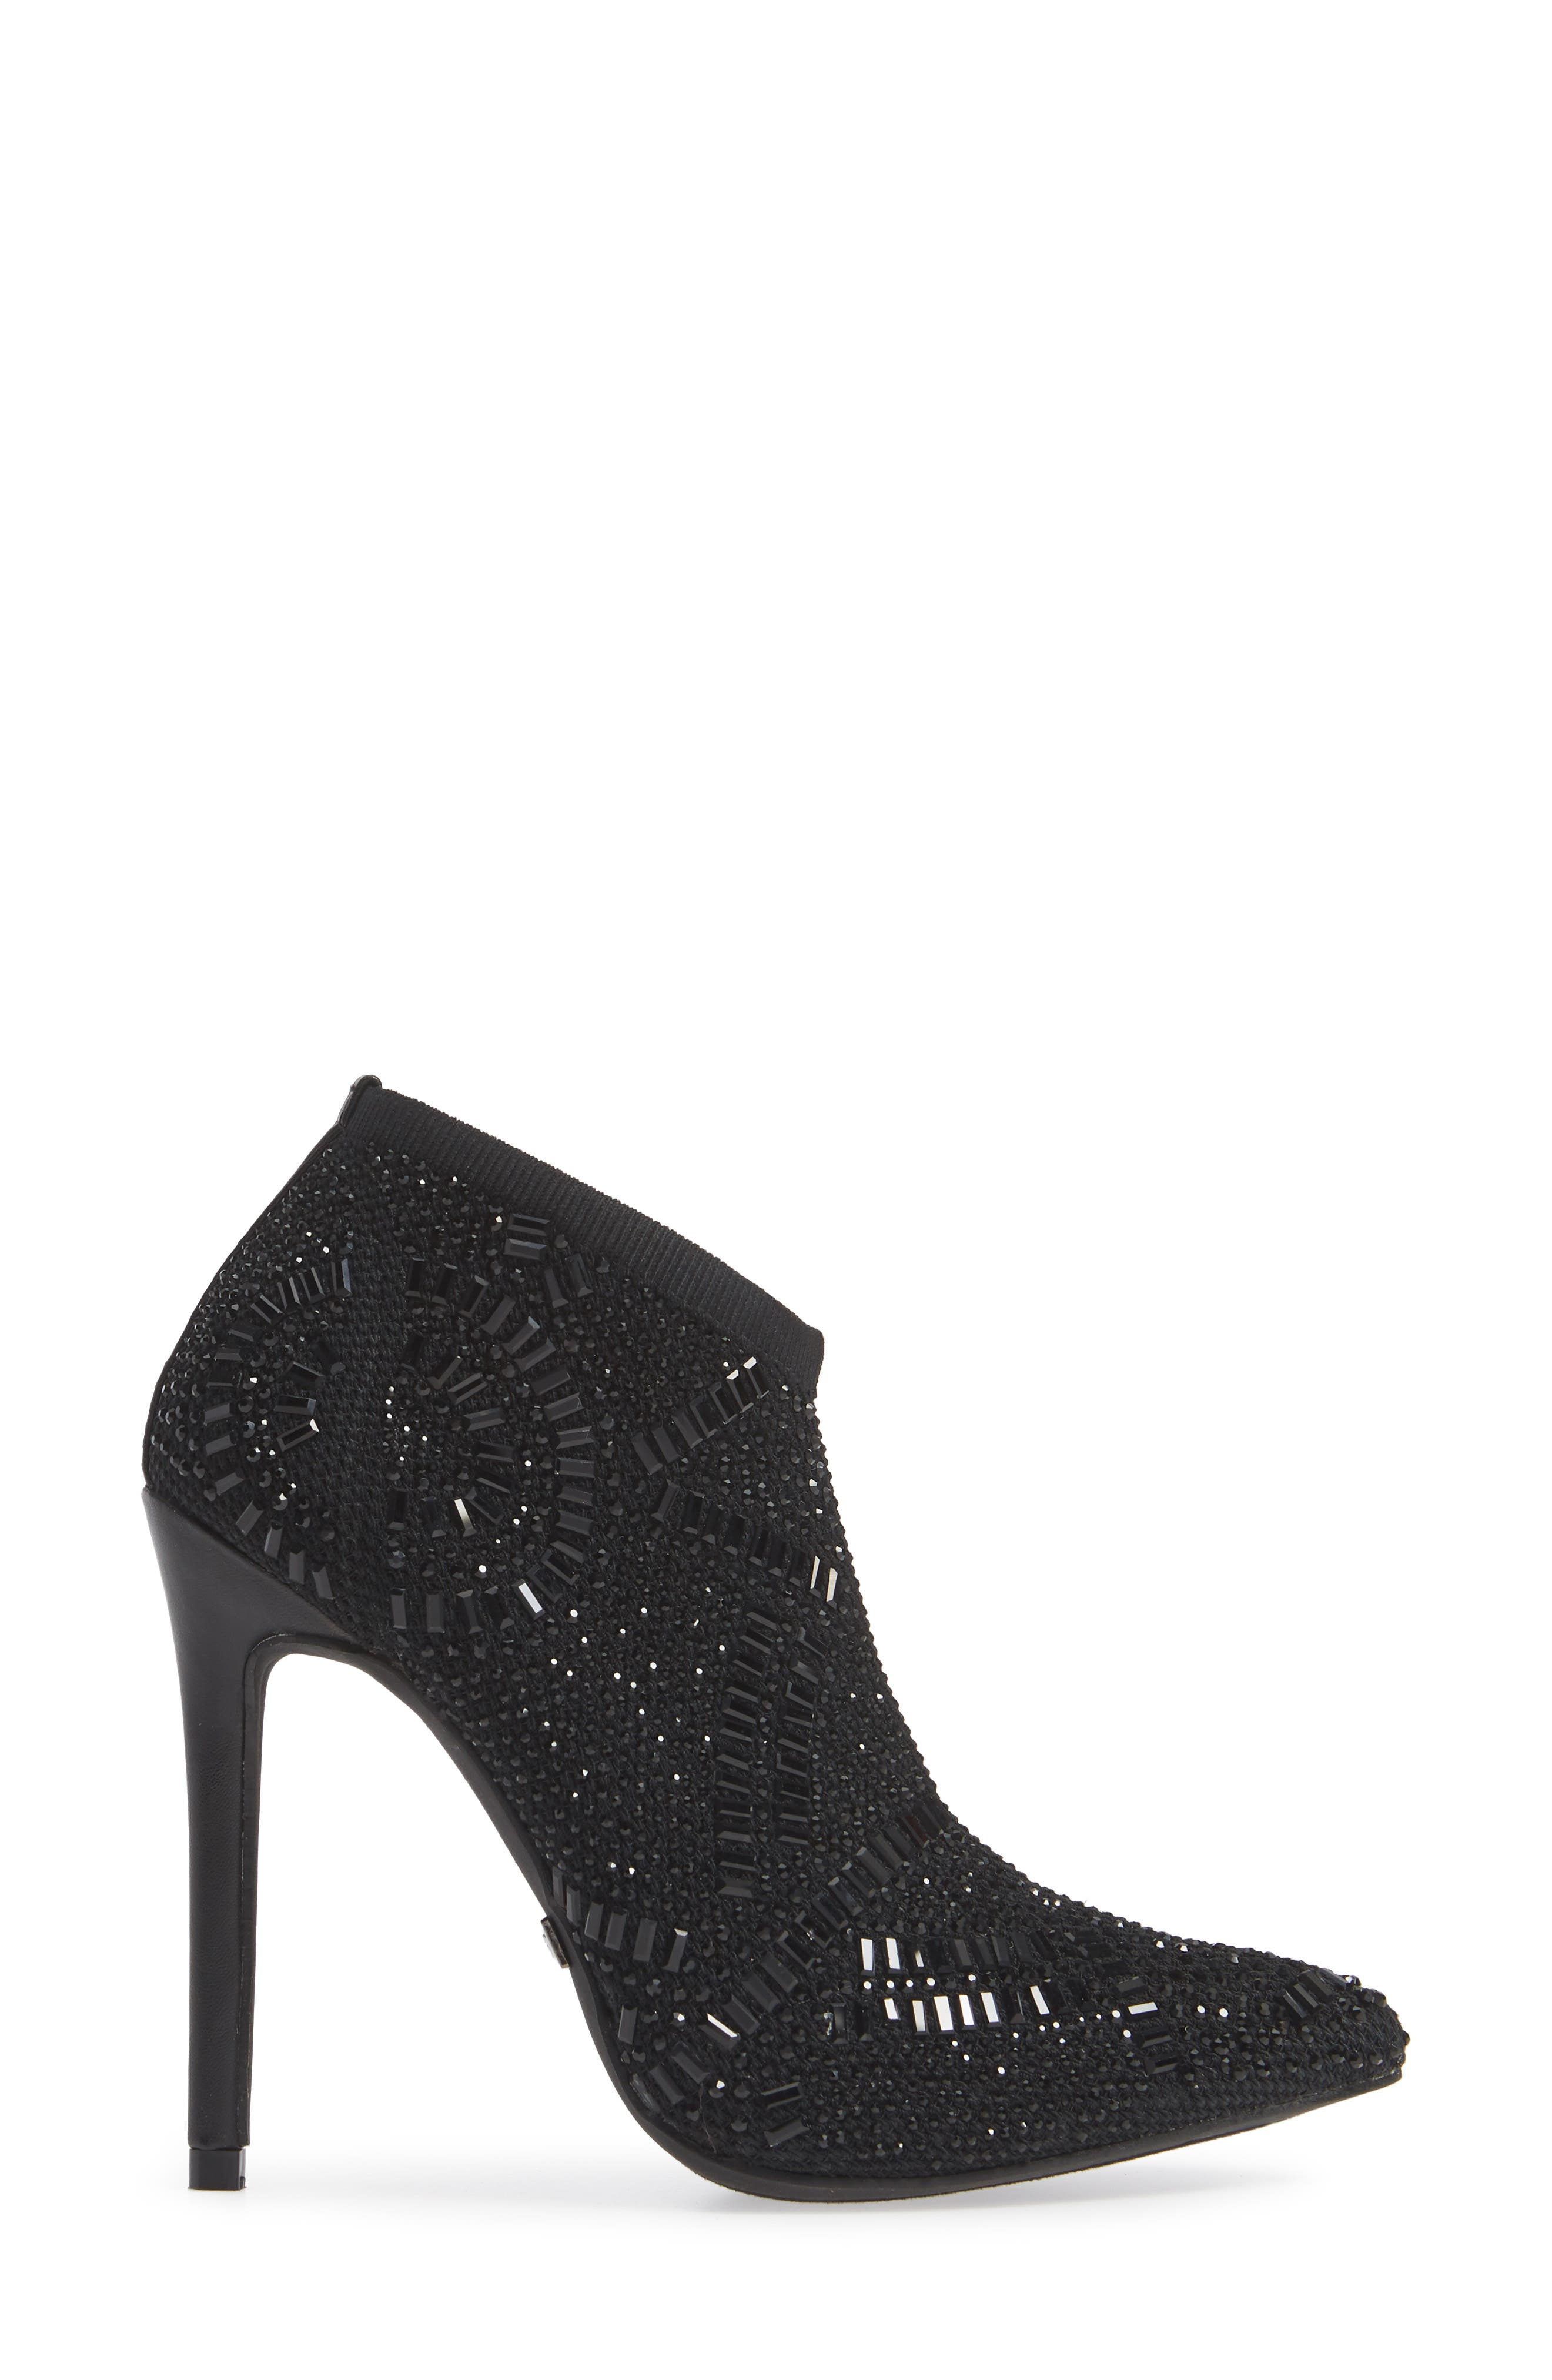 LAUREN LORRAINE, Sarah Crystal Embellished Bootie, Alternate thumbnail 3, color, BLACK FABRIC